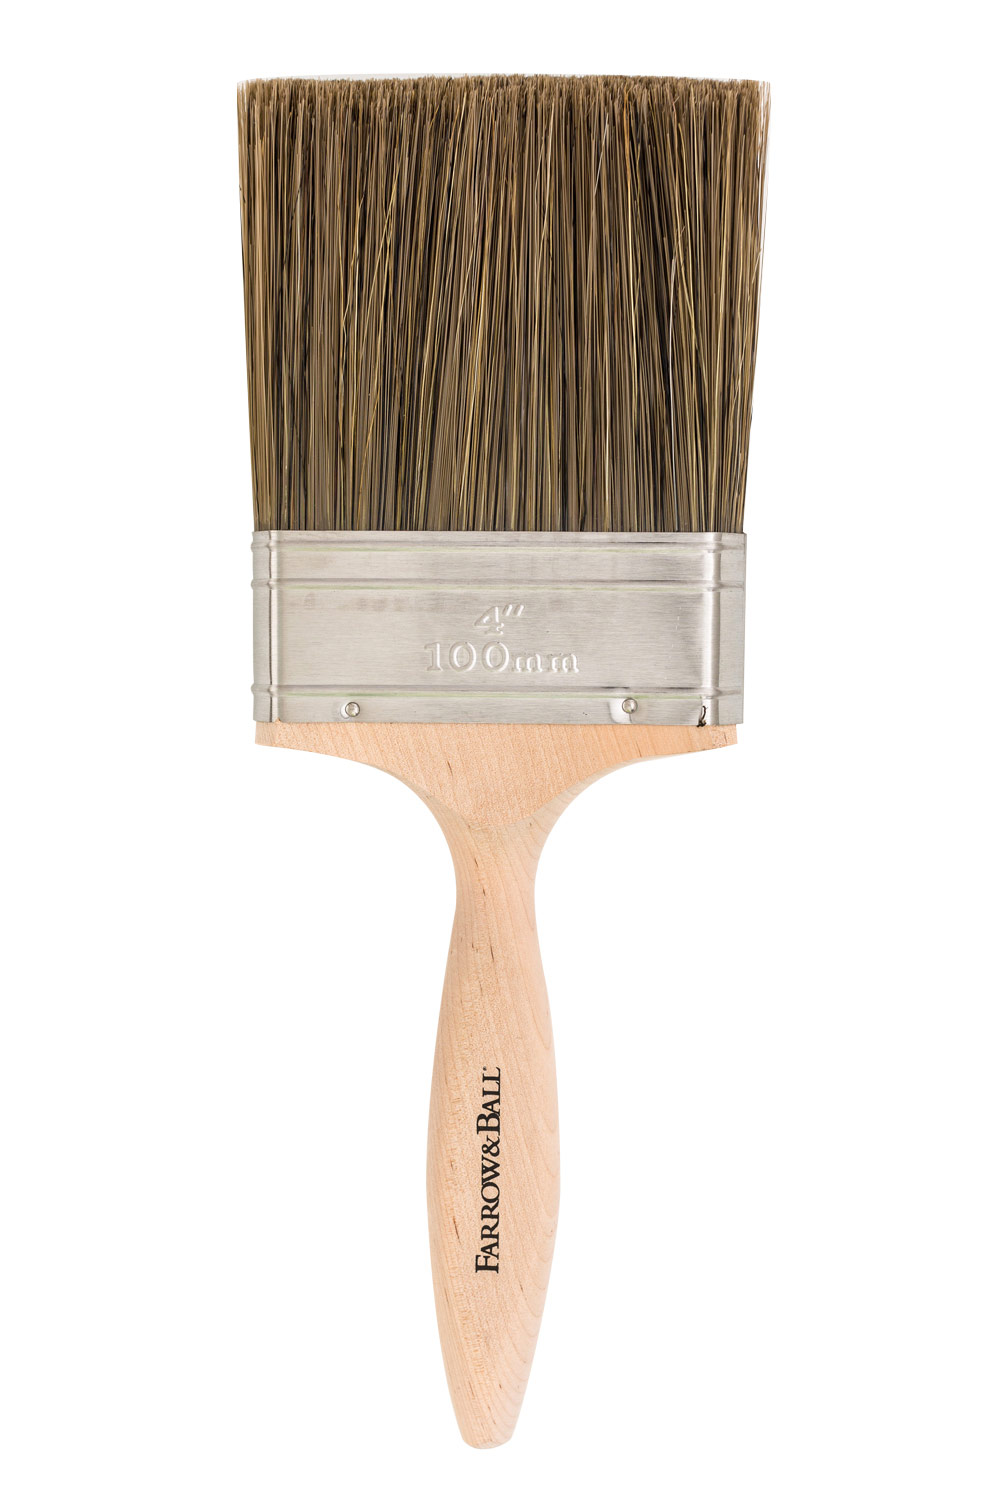 4 Inch Masonry Brush $20.00  Order Now